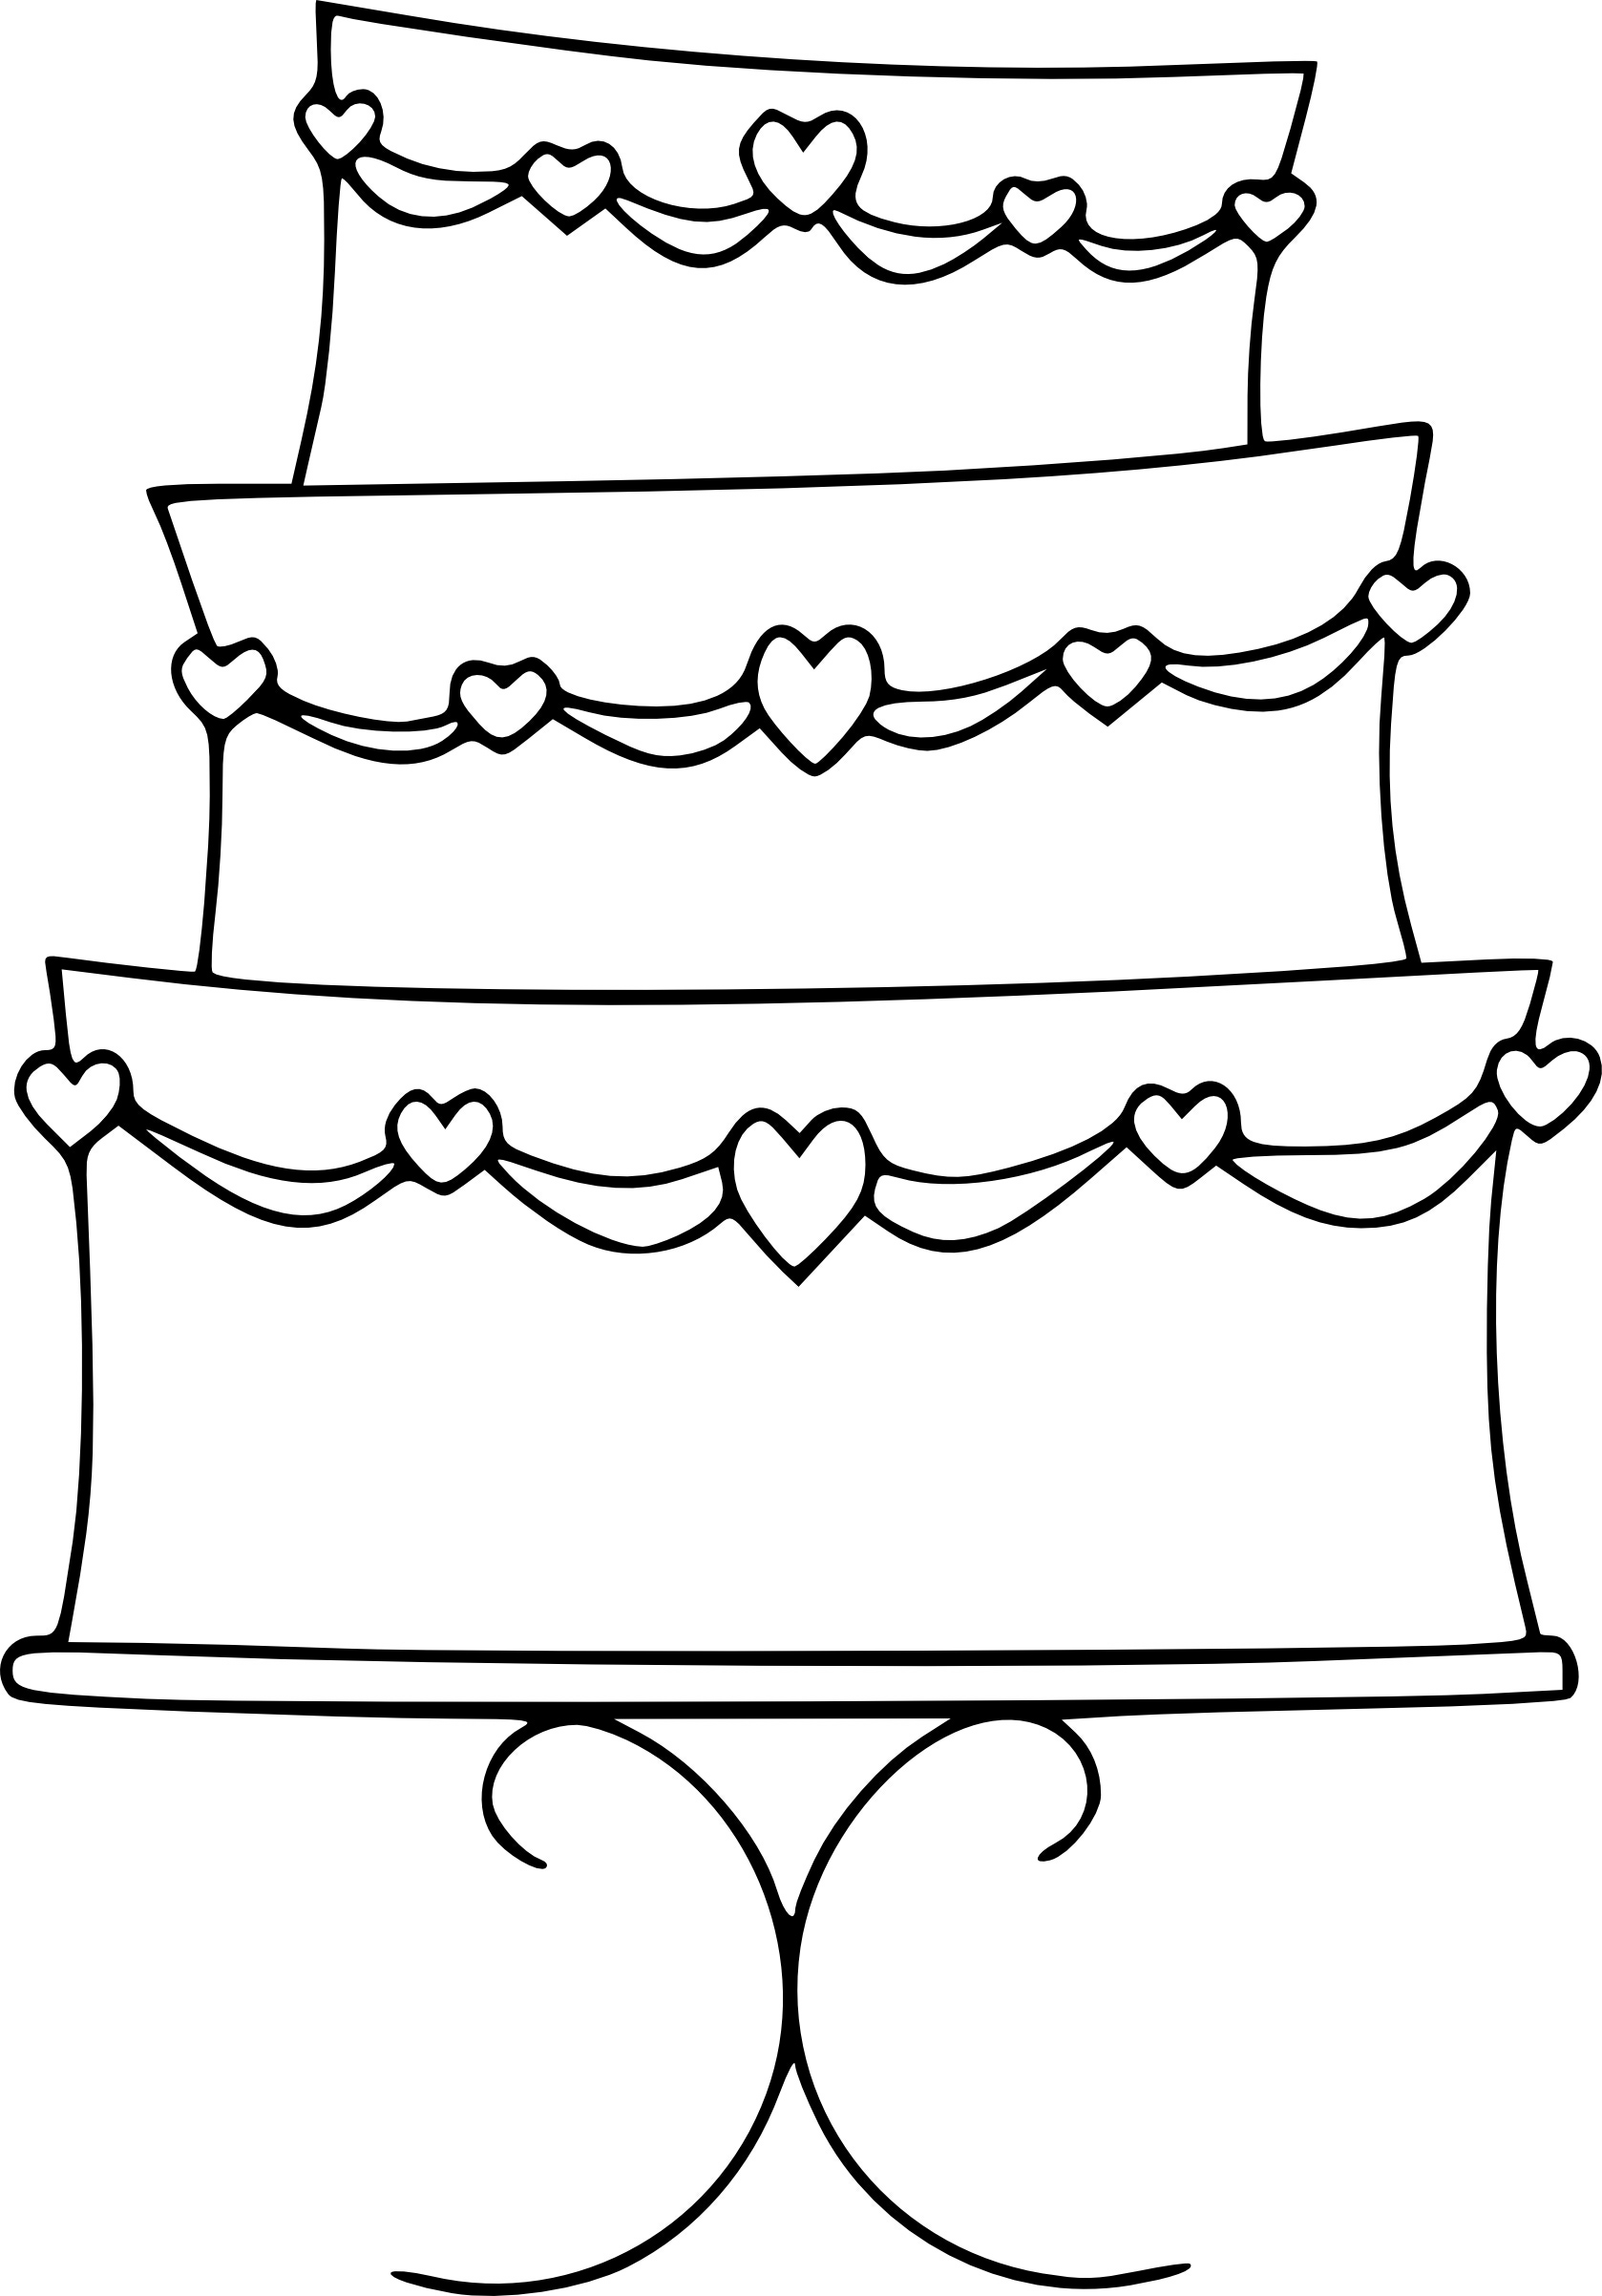 Free Birthday Cake Outline Download Free Clip Art Free